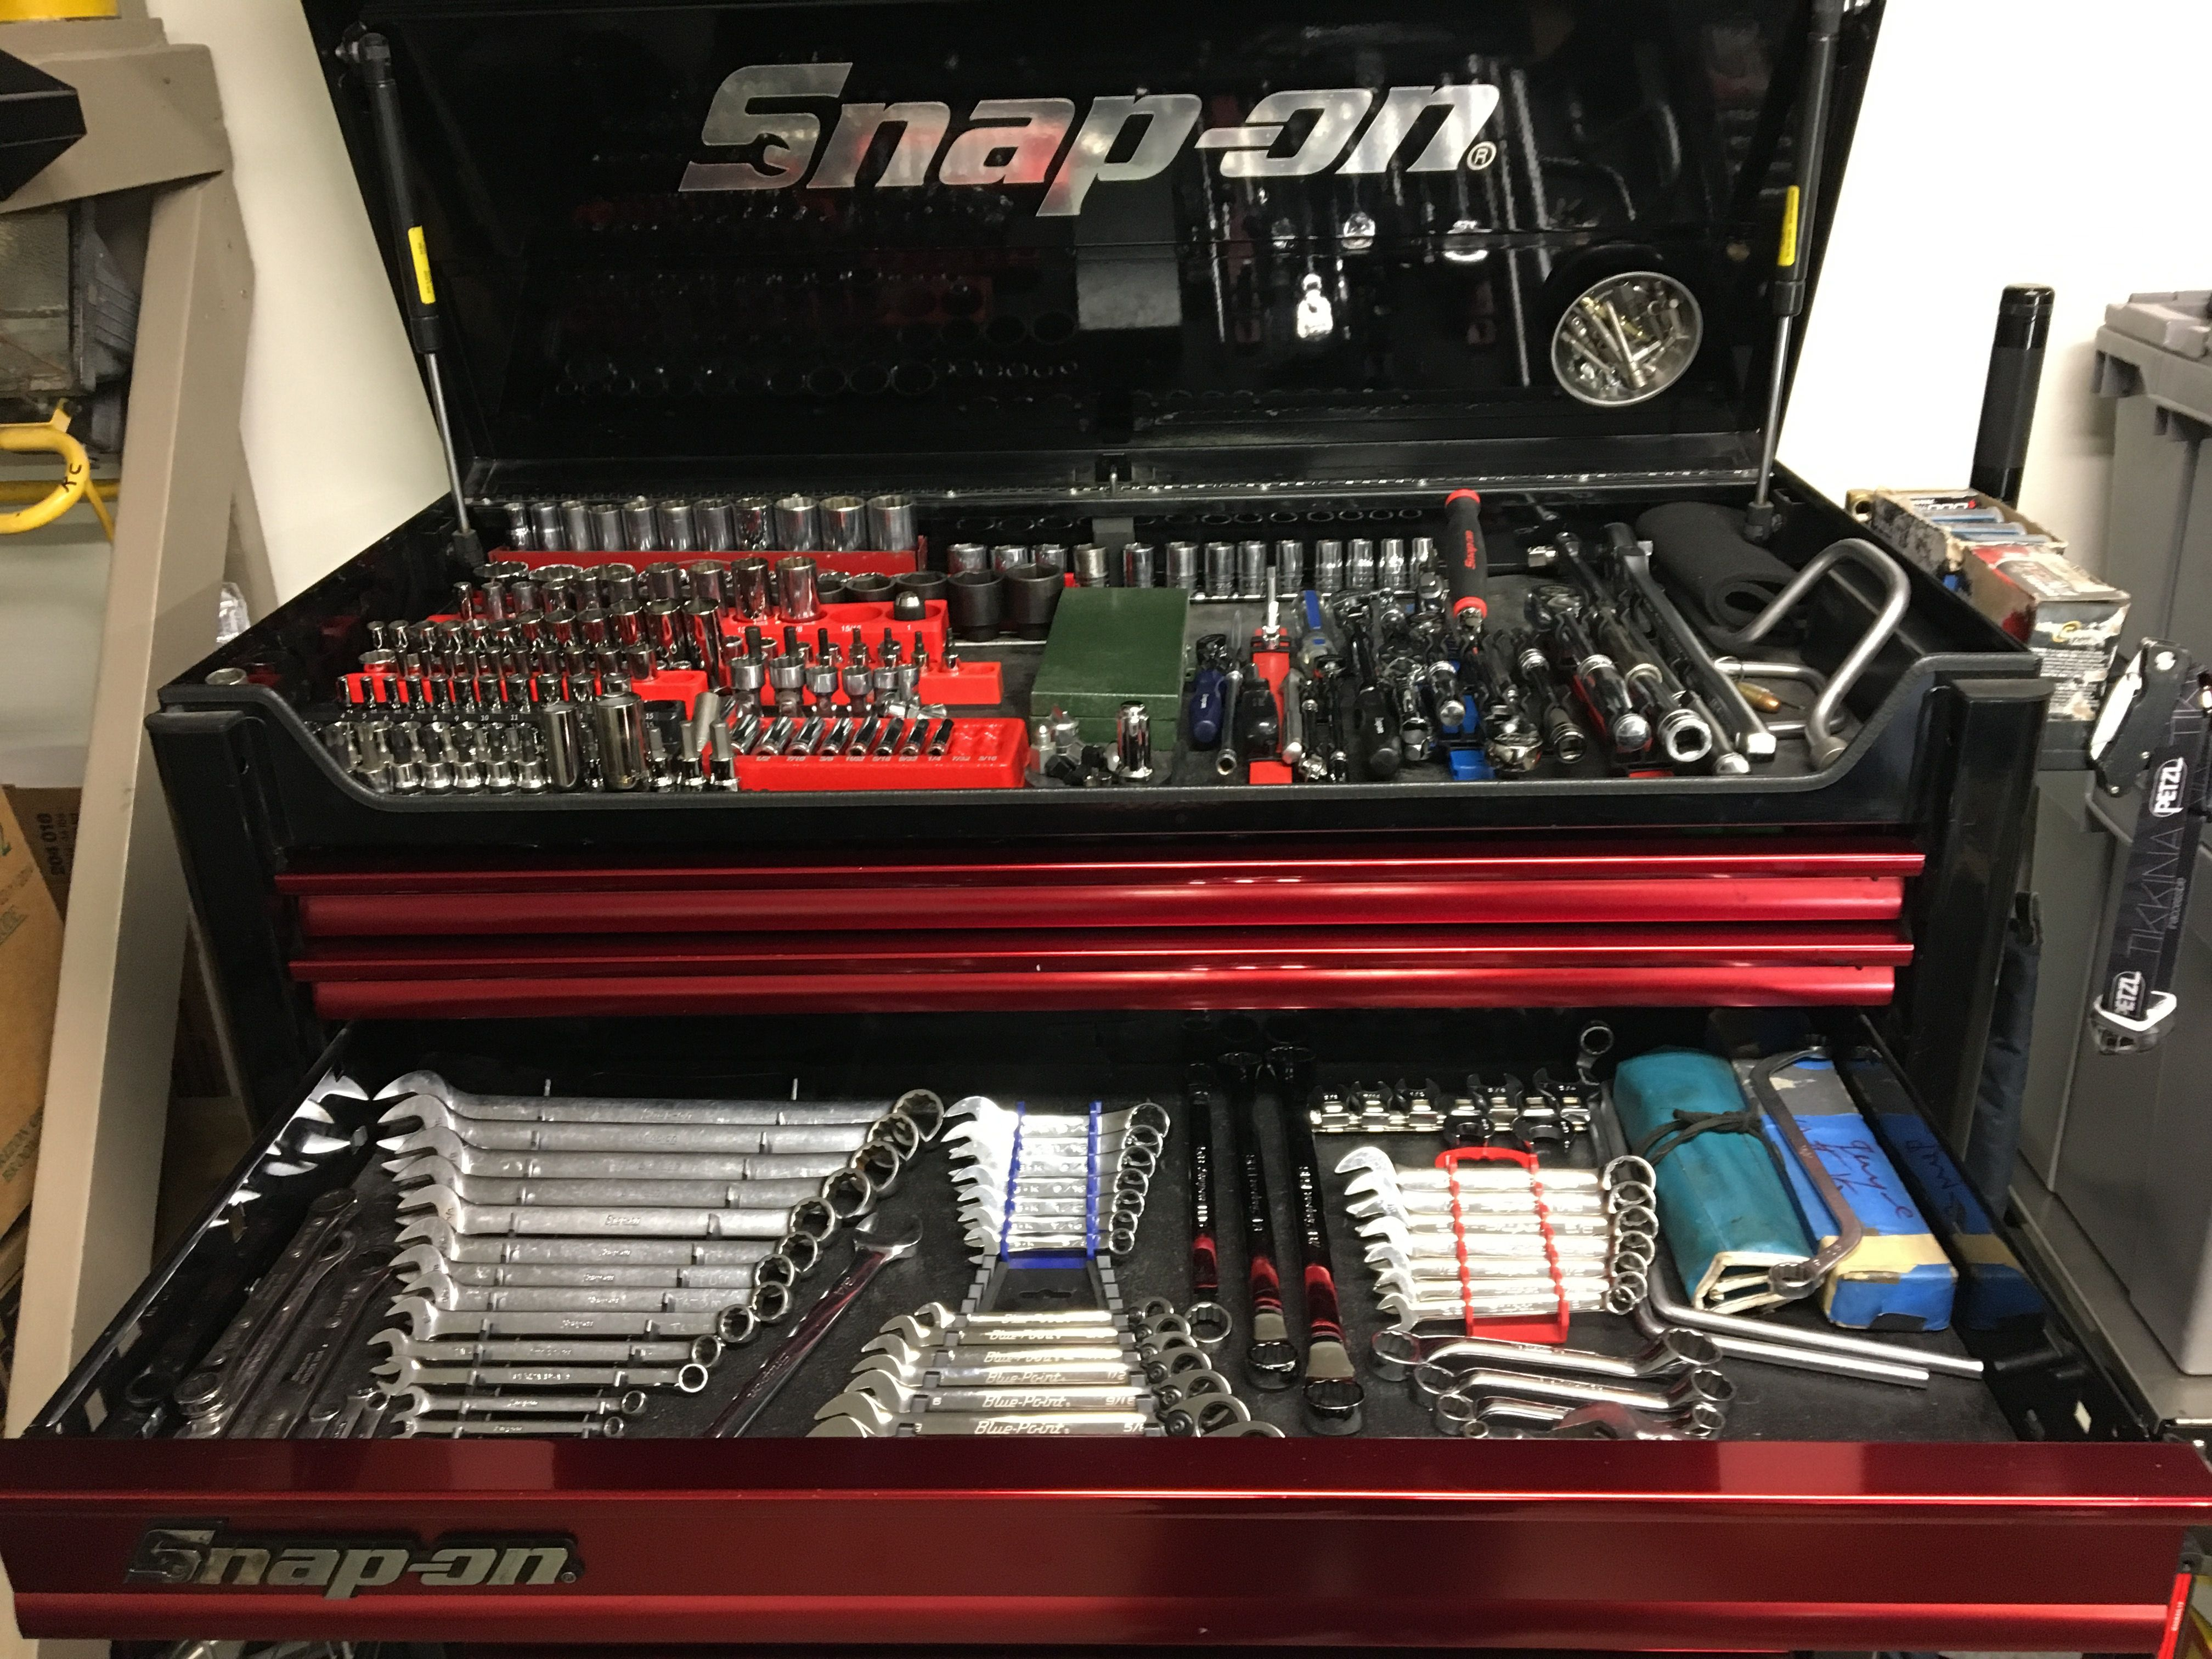 Snap on tools collection and box   Snap On Tool/ tools in